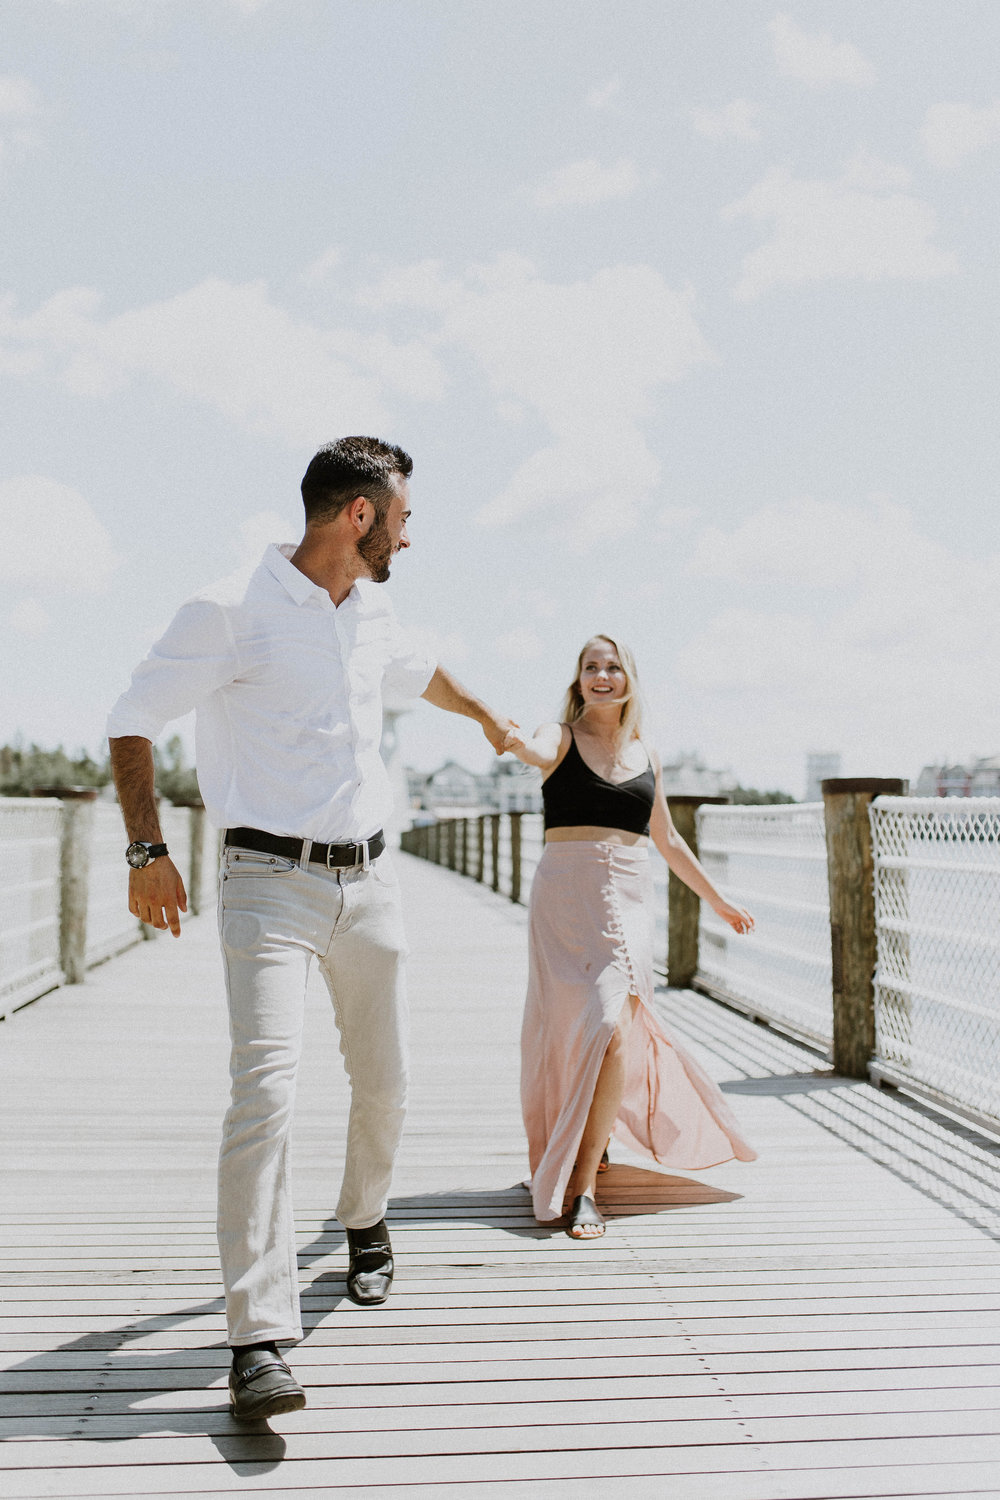 Bree + Stephen - BOARDWALK HOTEL, ORLANDO FL